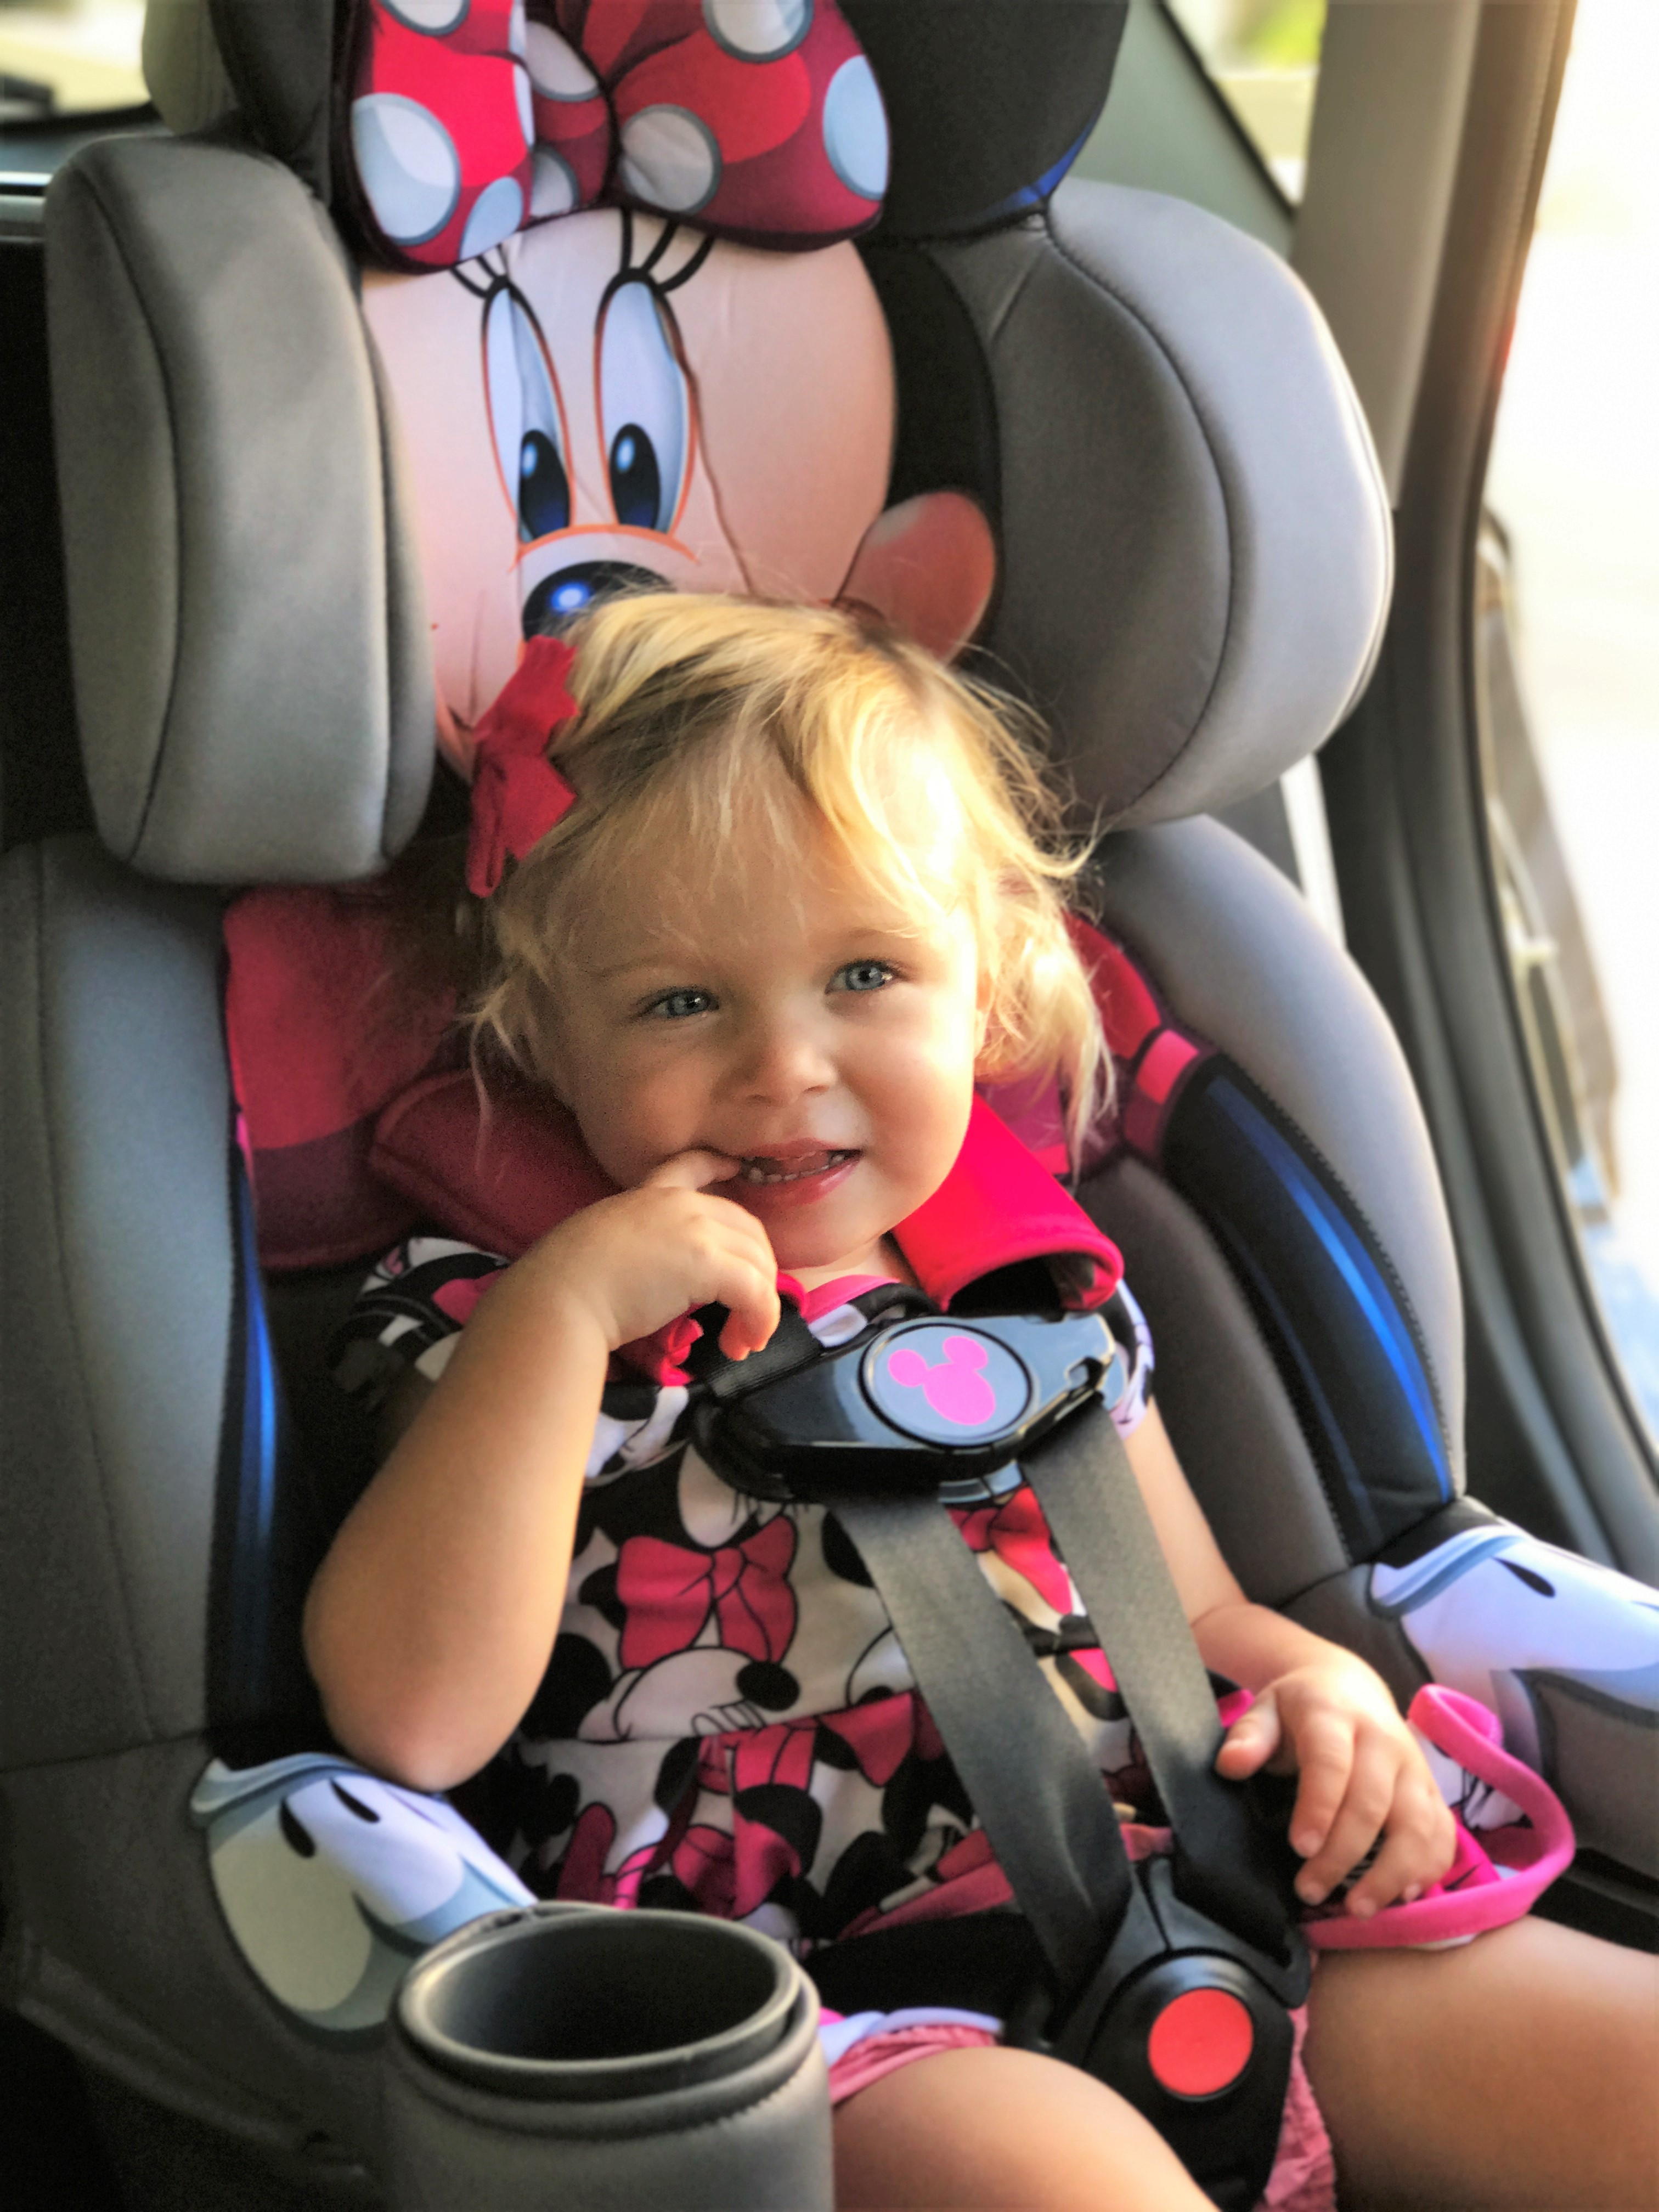 Making Safety Fun With A Minnie Mouse Car Seat